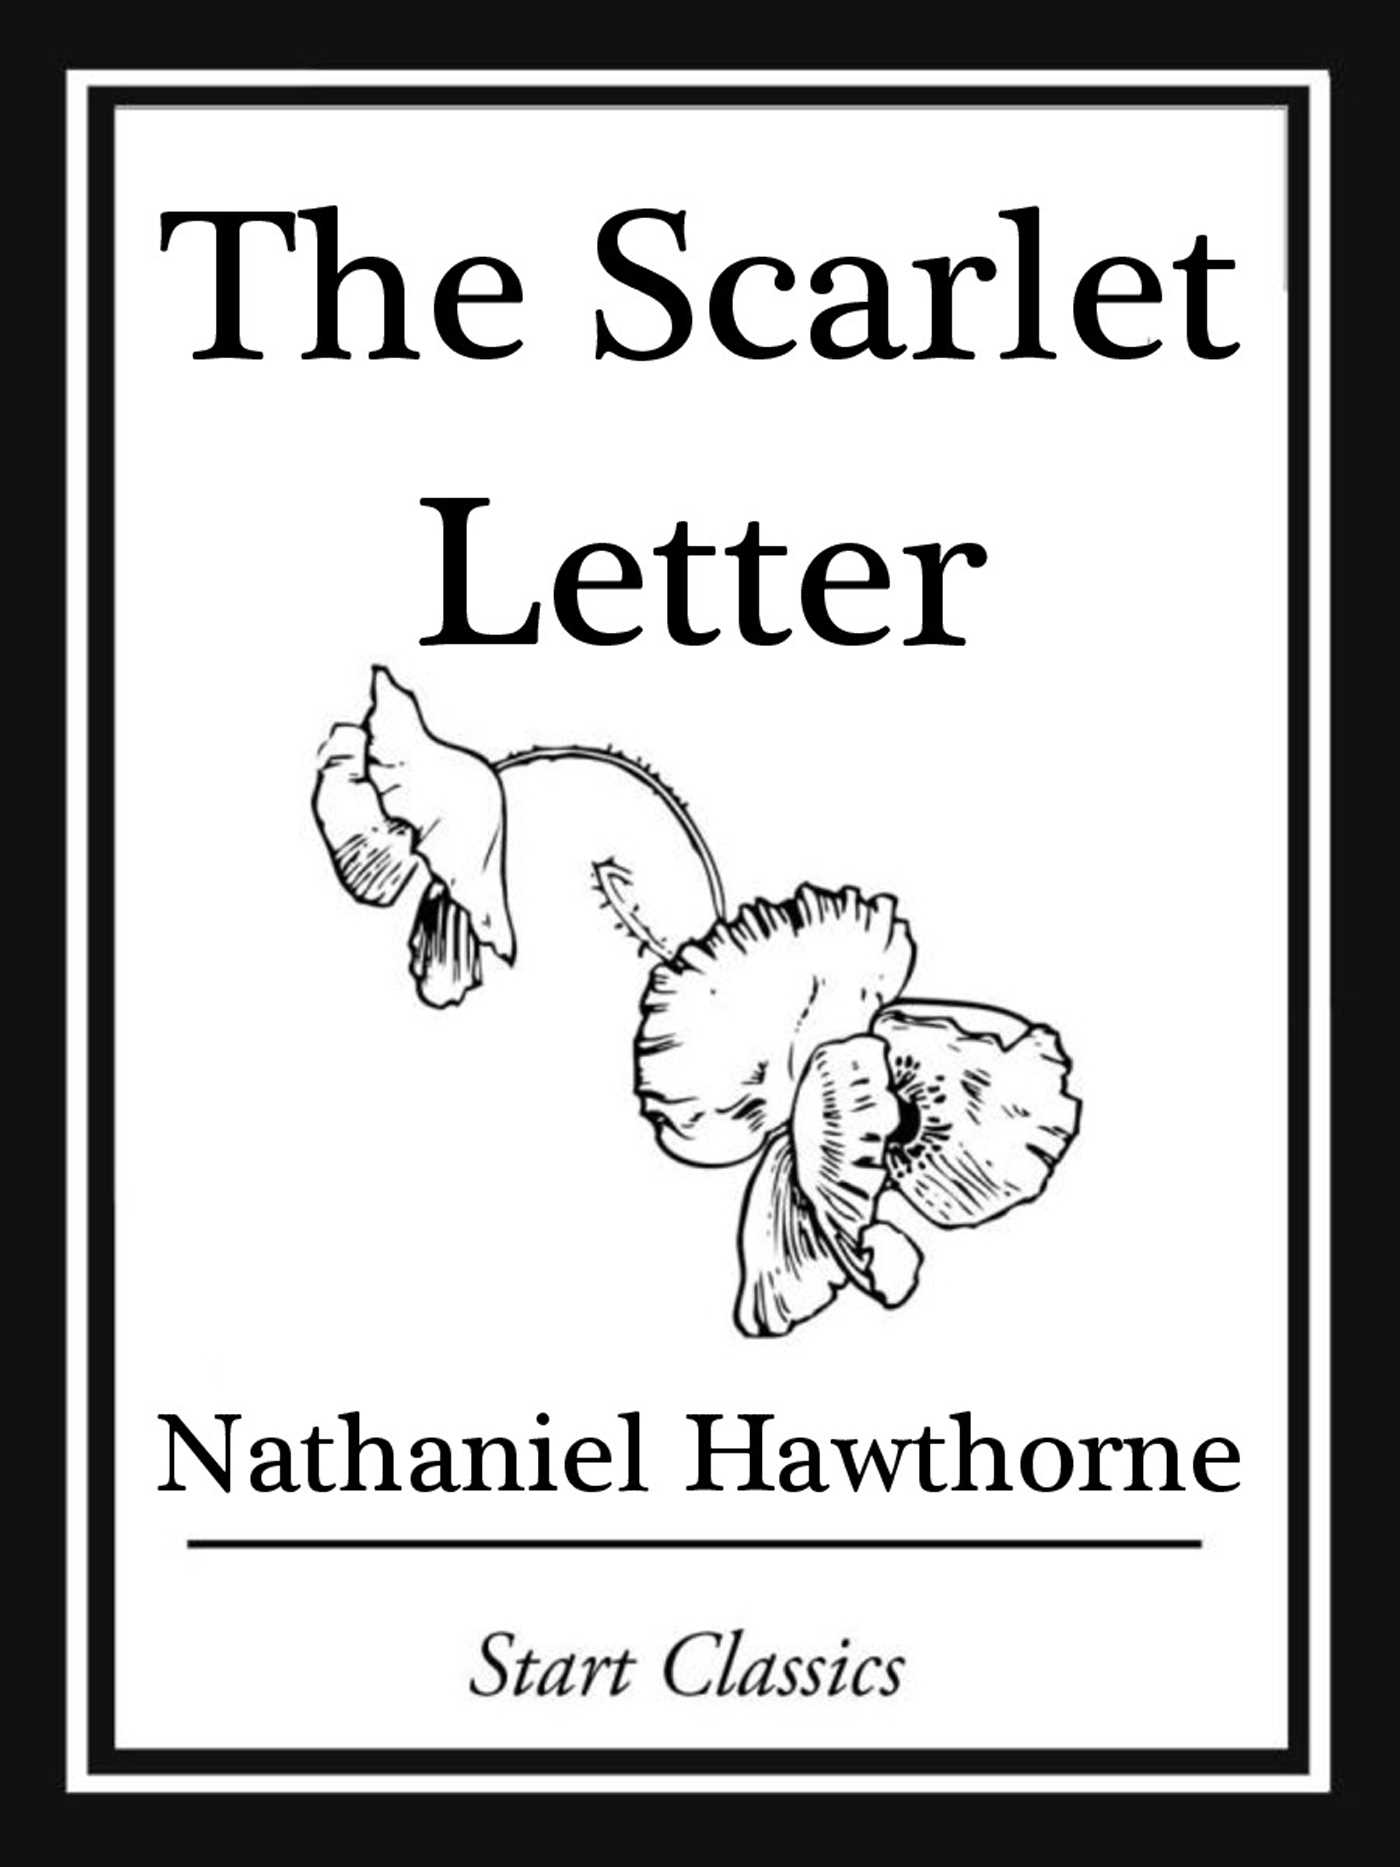 a comparison of themes and resolves in the scarlet letter by nathaniel hawthorne and the great gatsb Symbolism in the scarlet letter research papers analyze nathaniel hawthorne's the great gatsby by f scott fitzgerald provides great insight into the.